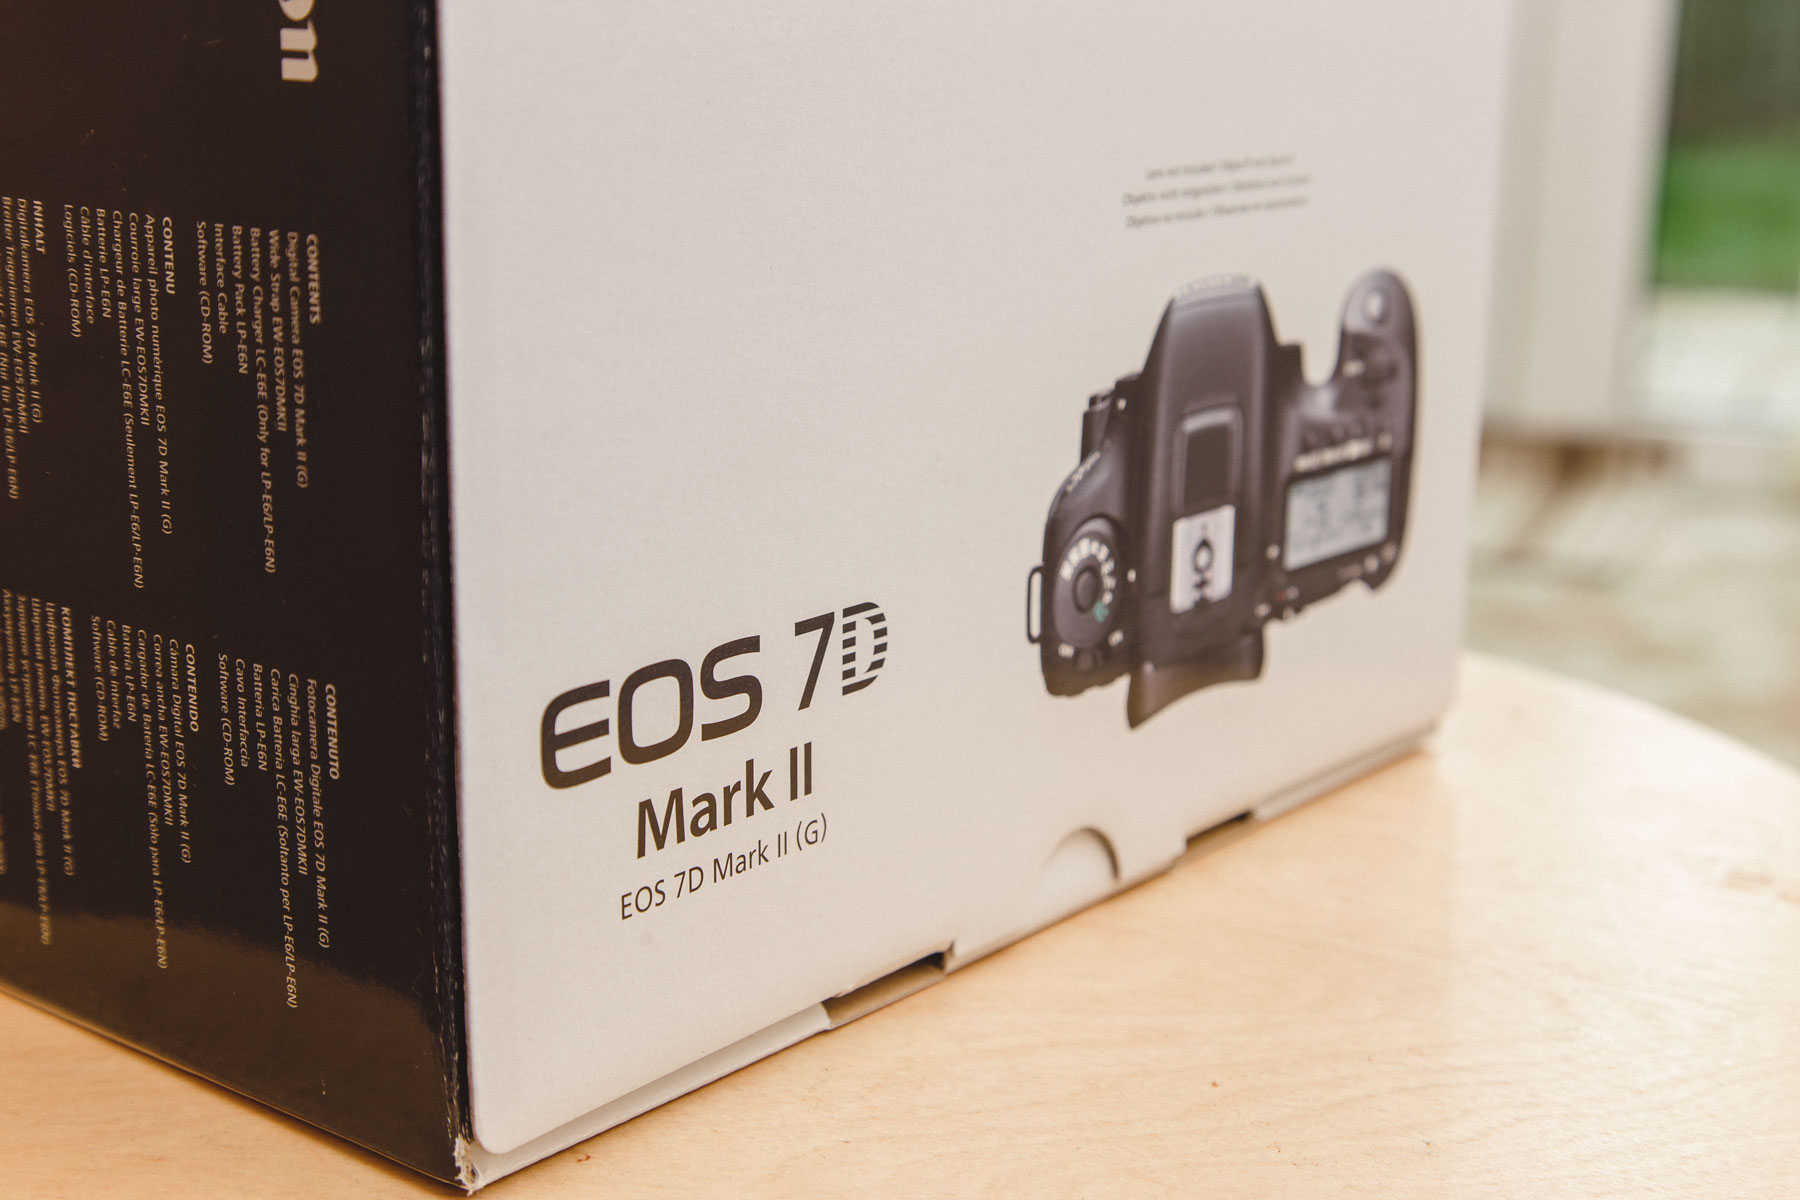 The End of the Canon 600D – Part Two: The Upgrade is Here